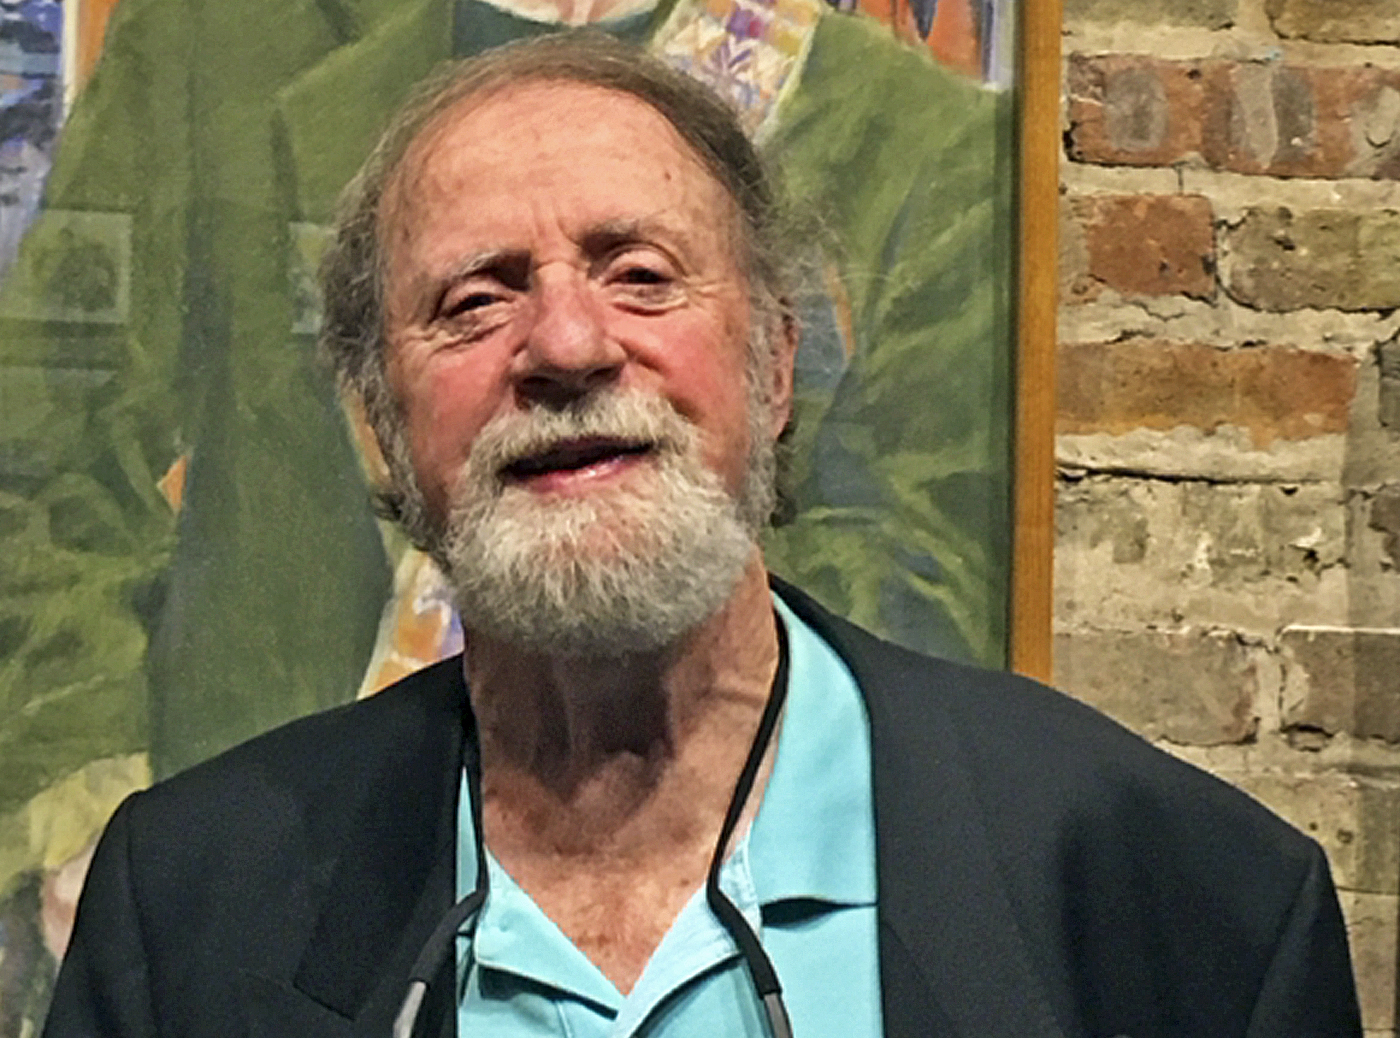 John M. Downs, a longtime artist with the Chicago Daily News and Chicago Sun-Times, has died at 82.